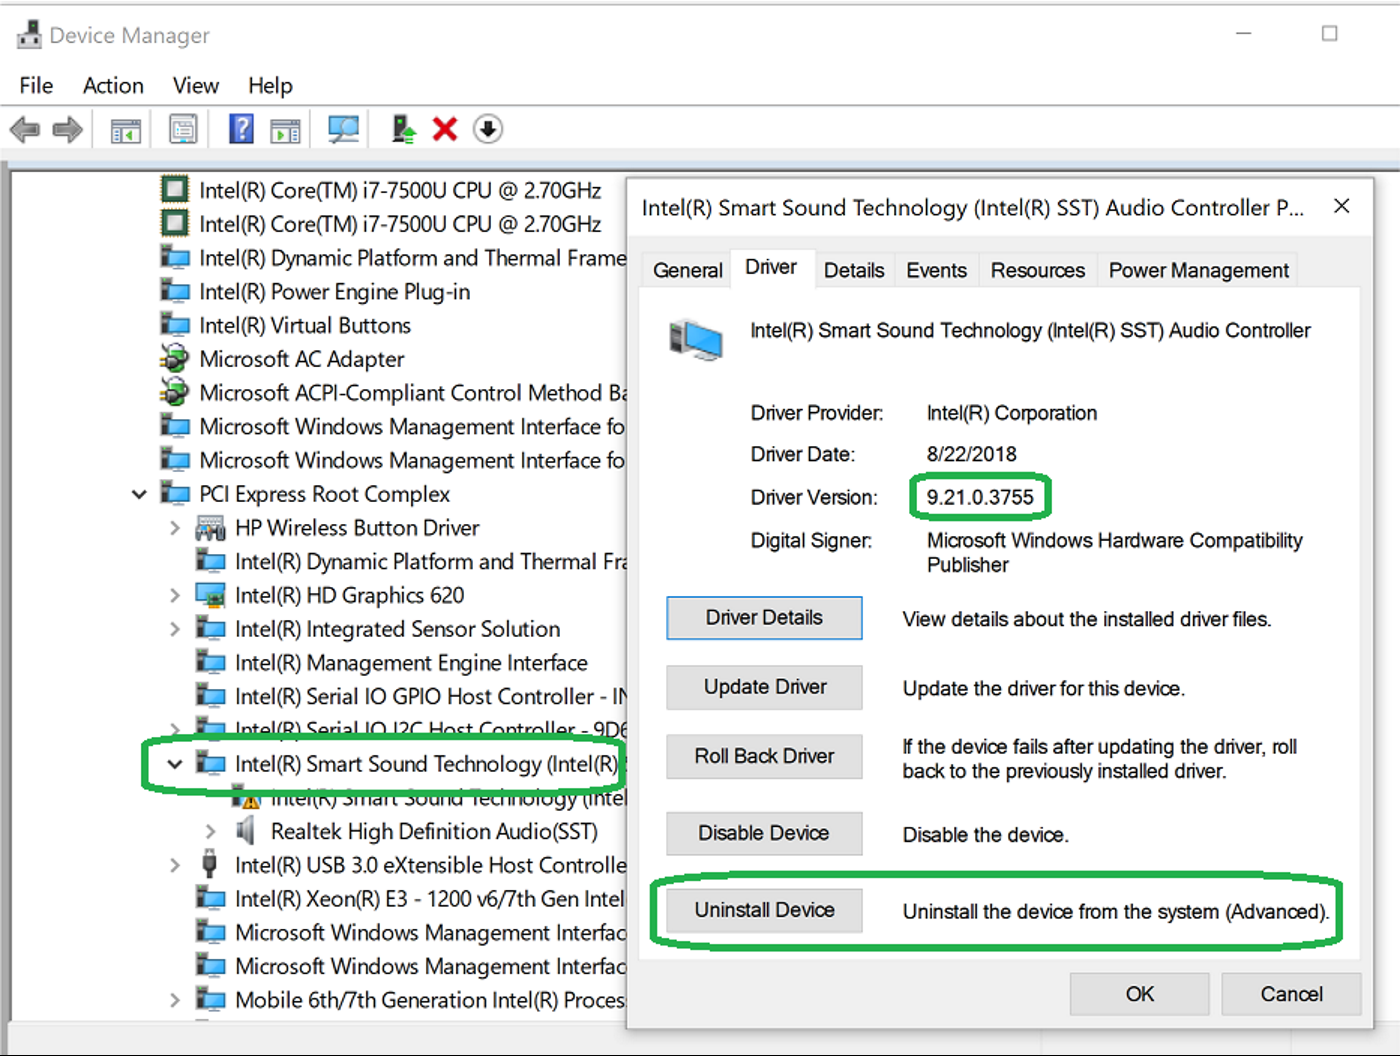 How to Fix Windows 10 Audio Issues on Versions 1709, 1803